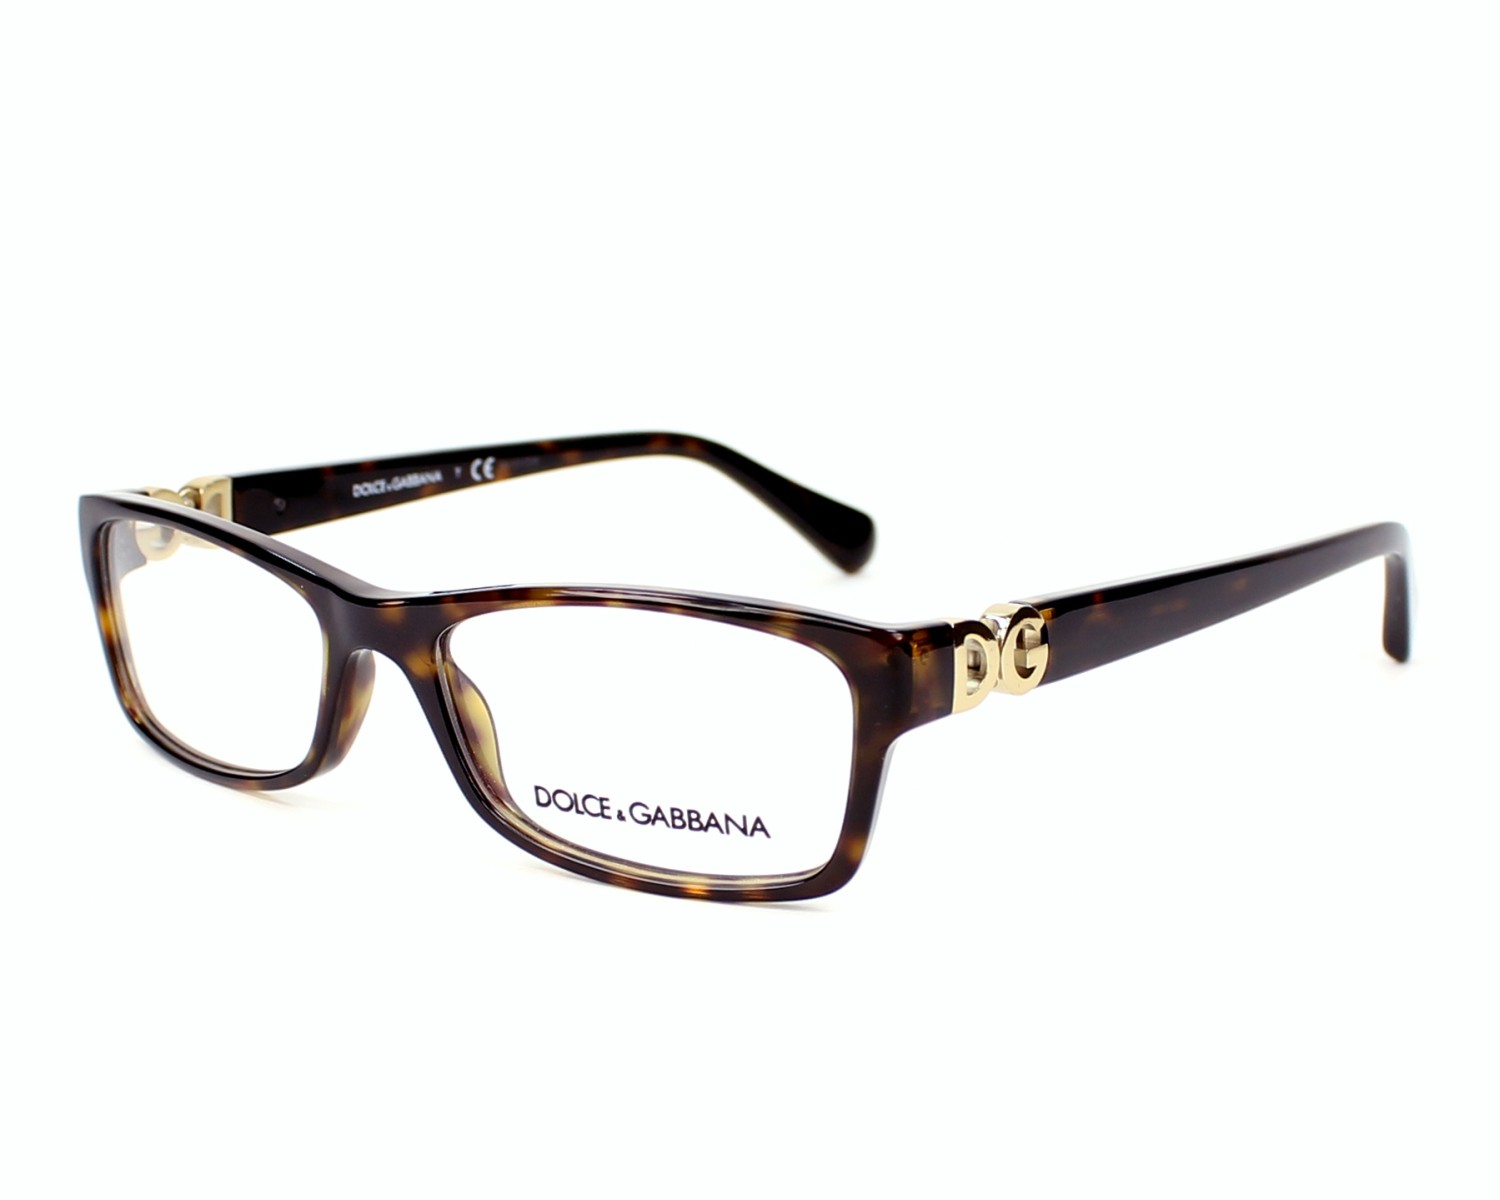 Dolce And Gabbana Mens Eyeglass Frames : Order your Dolce Gabbana eyeglasses DG3228 502 51 today